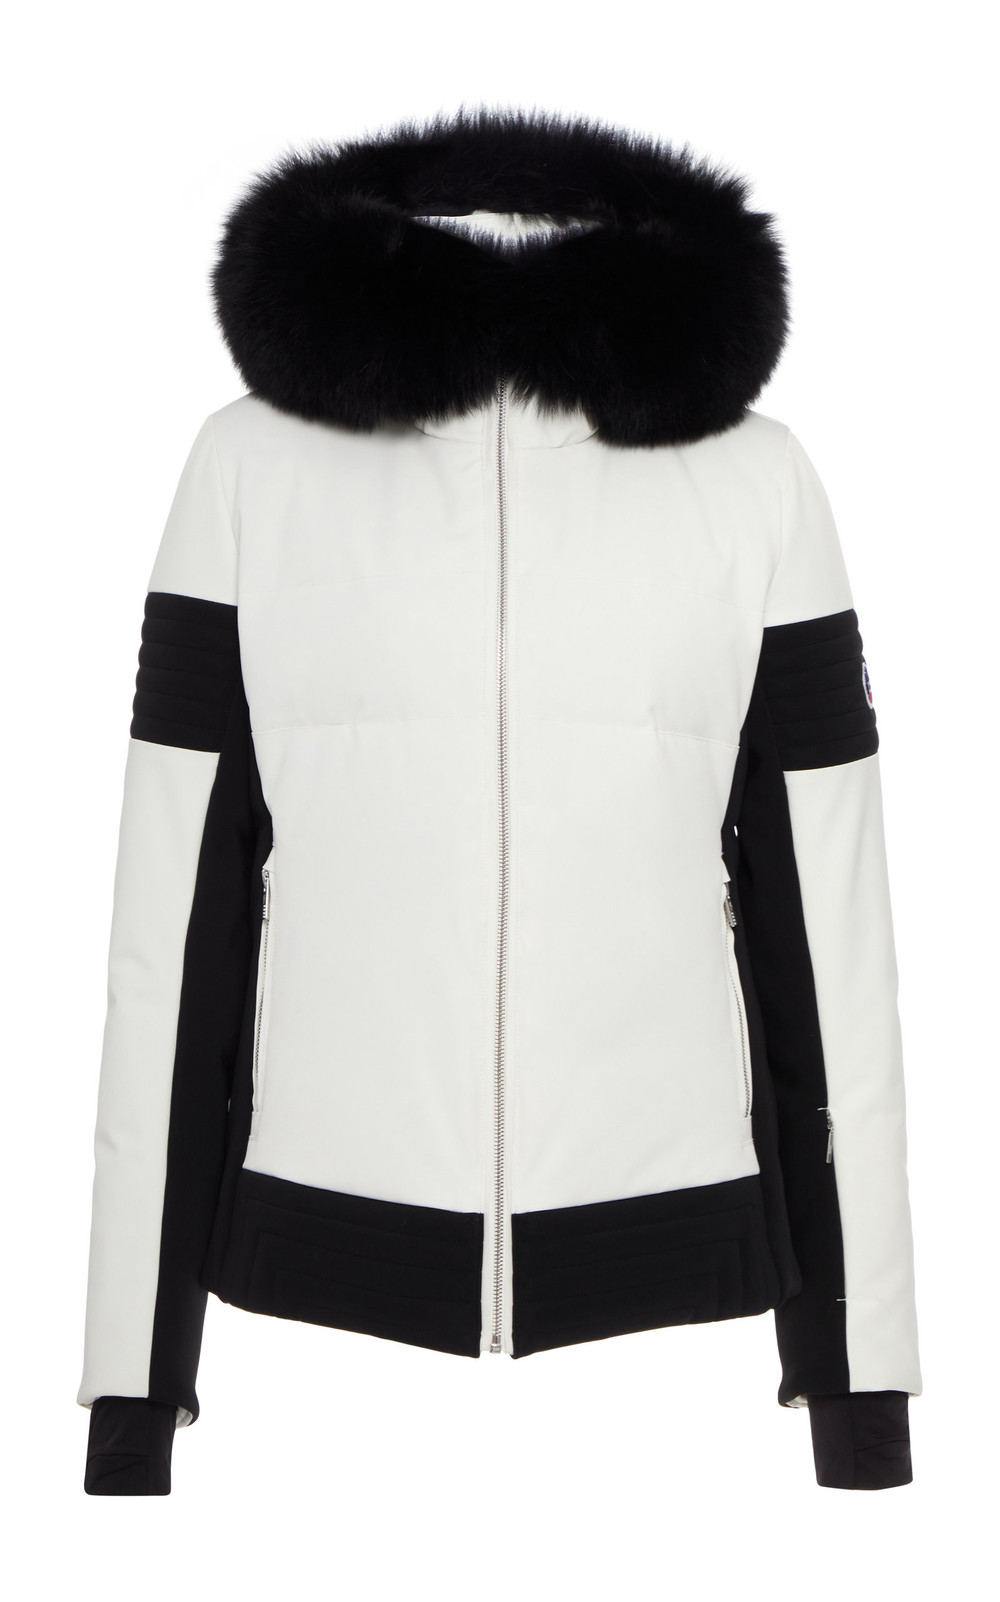 Fusalp Fur-Trimmed Two-Tone Shell Down Coat Size: 34 in white